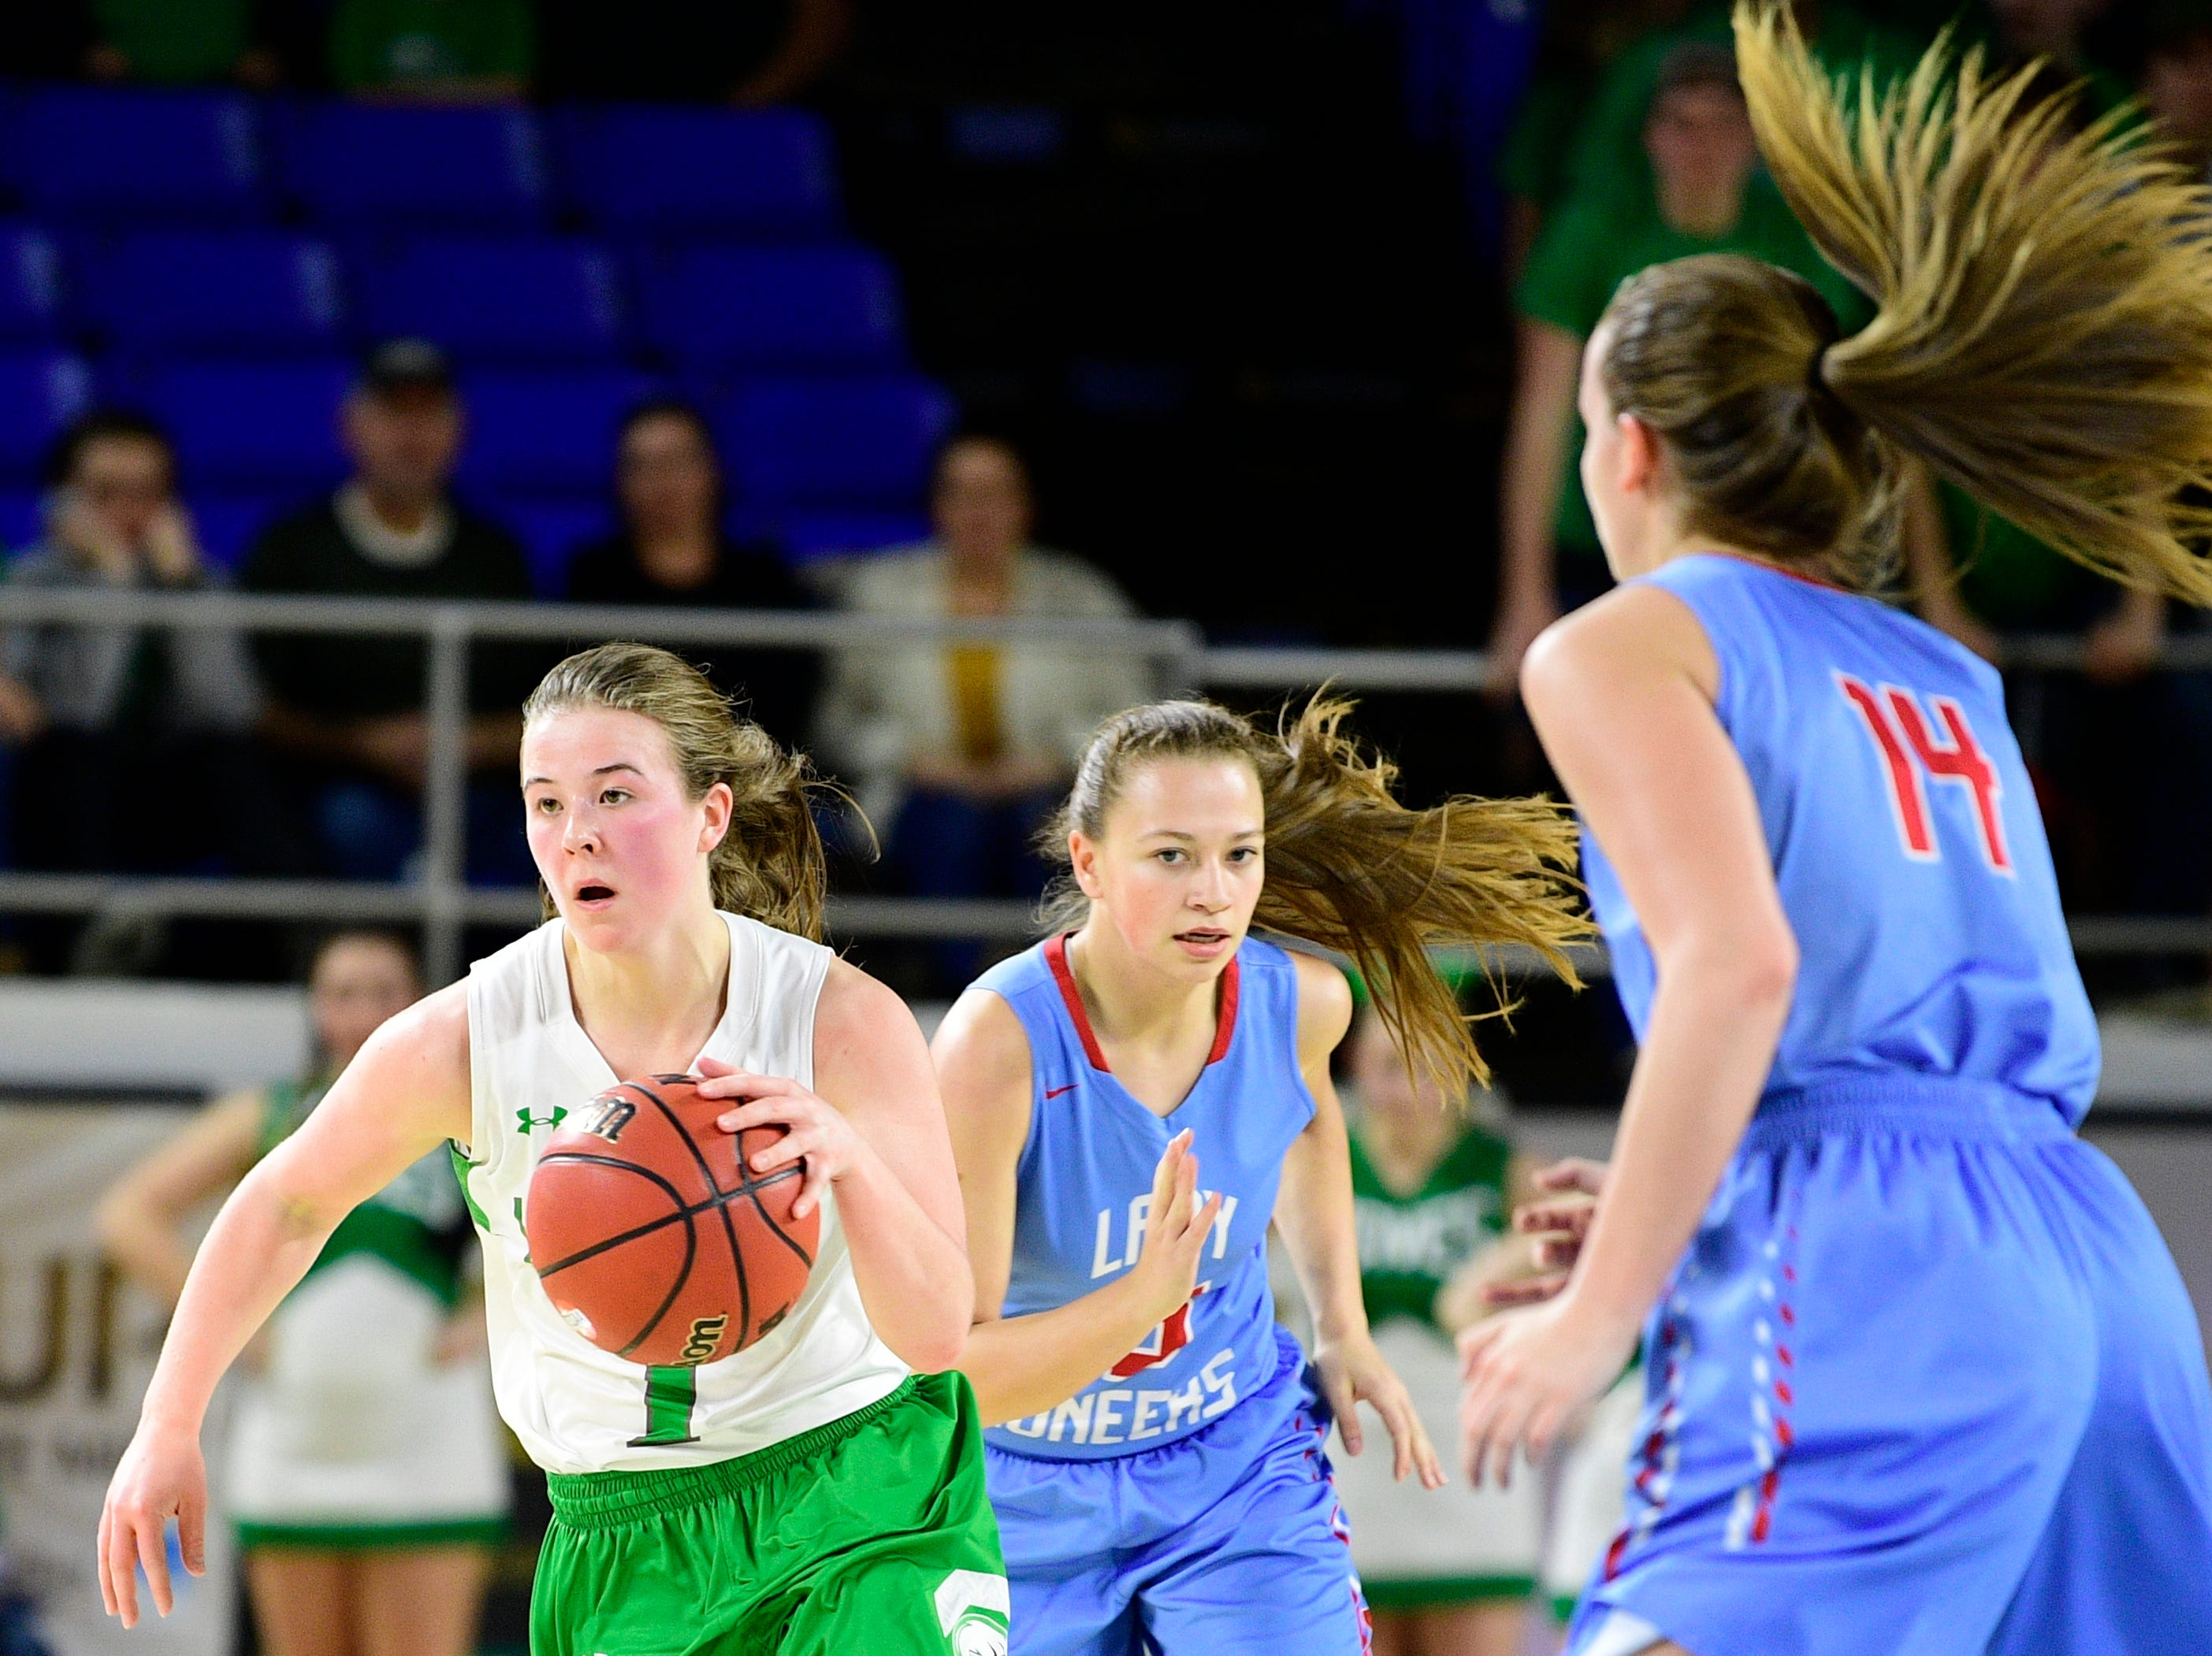 Midway's Caitlyn Ross (1) dribbles down the court past Gibson County's Alaina Hunt (14) and Gibson County's Ashton Lannom (1) during a game between Midway and Gibson County at the TSSAA girls state tournament at the Murphy Center in Murfreesboro, Tennessee on Friday, March 8, 2019.